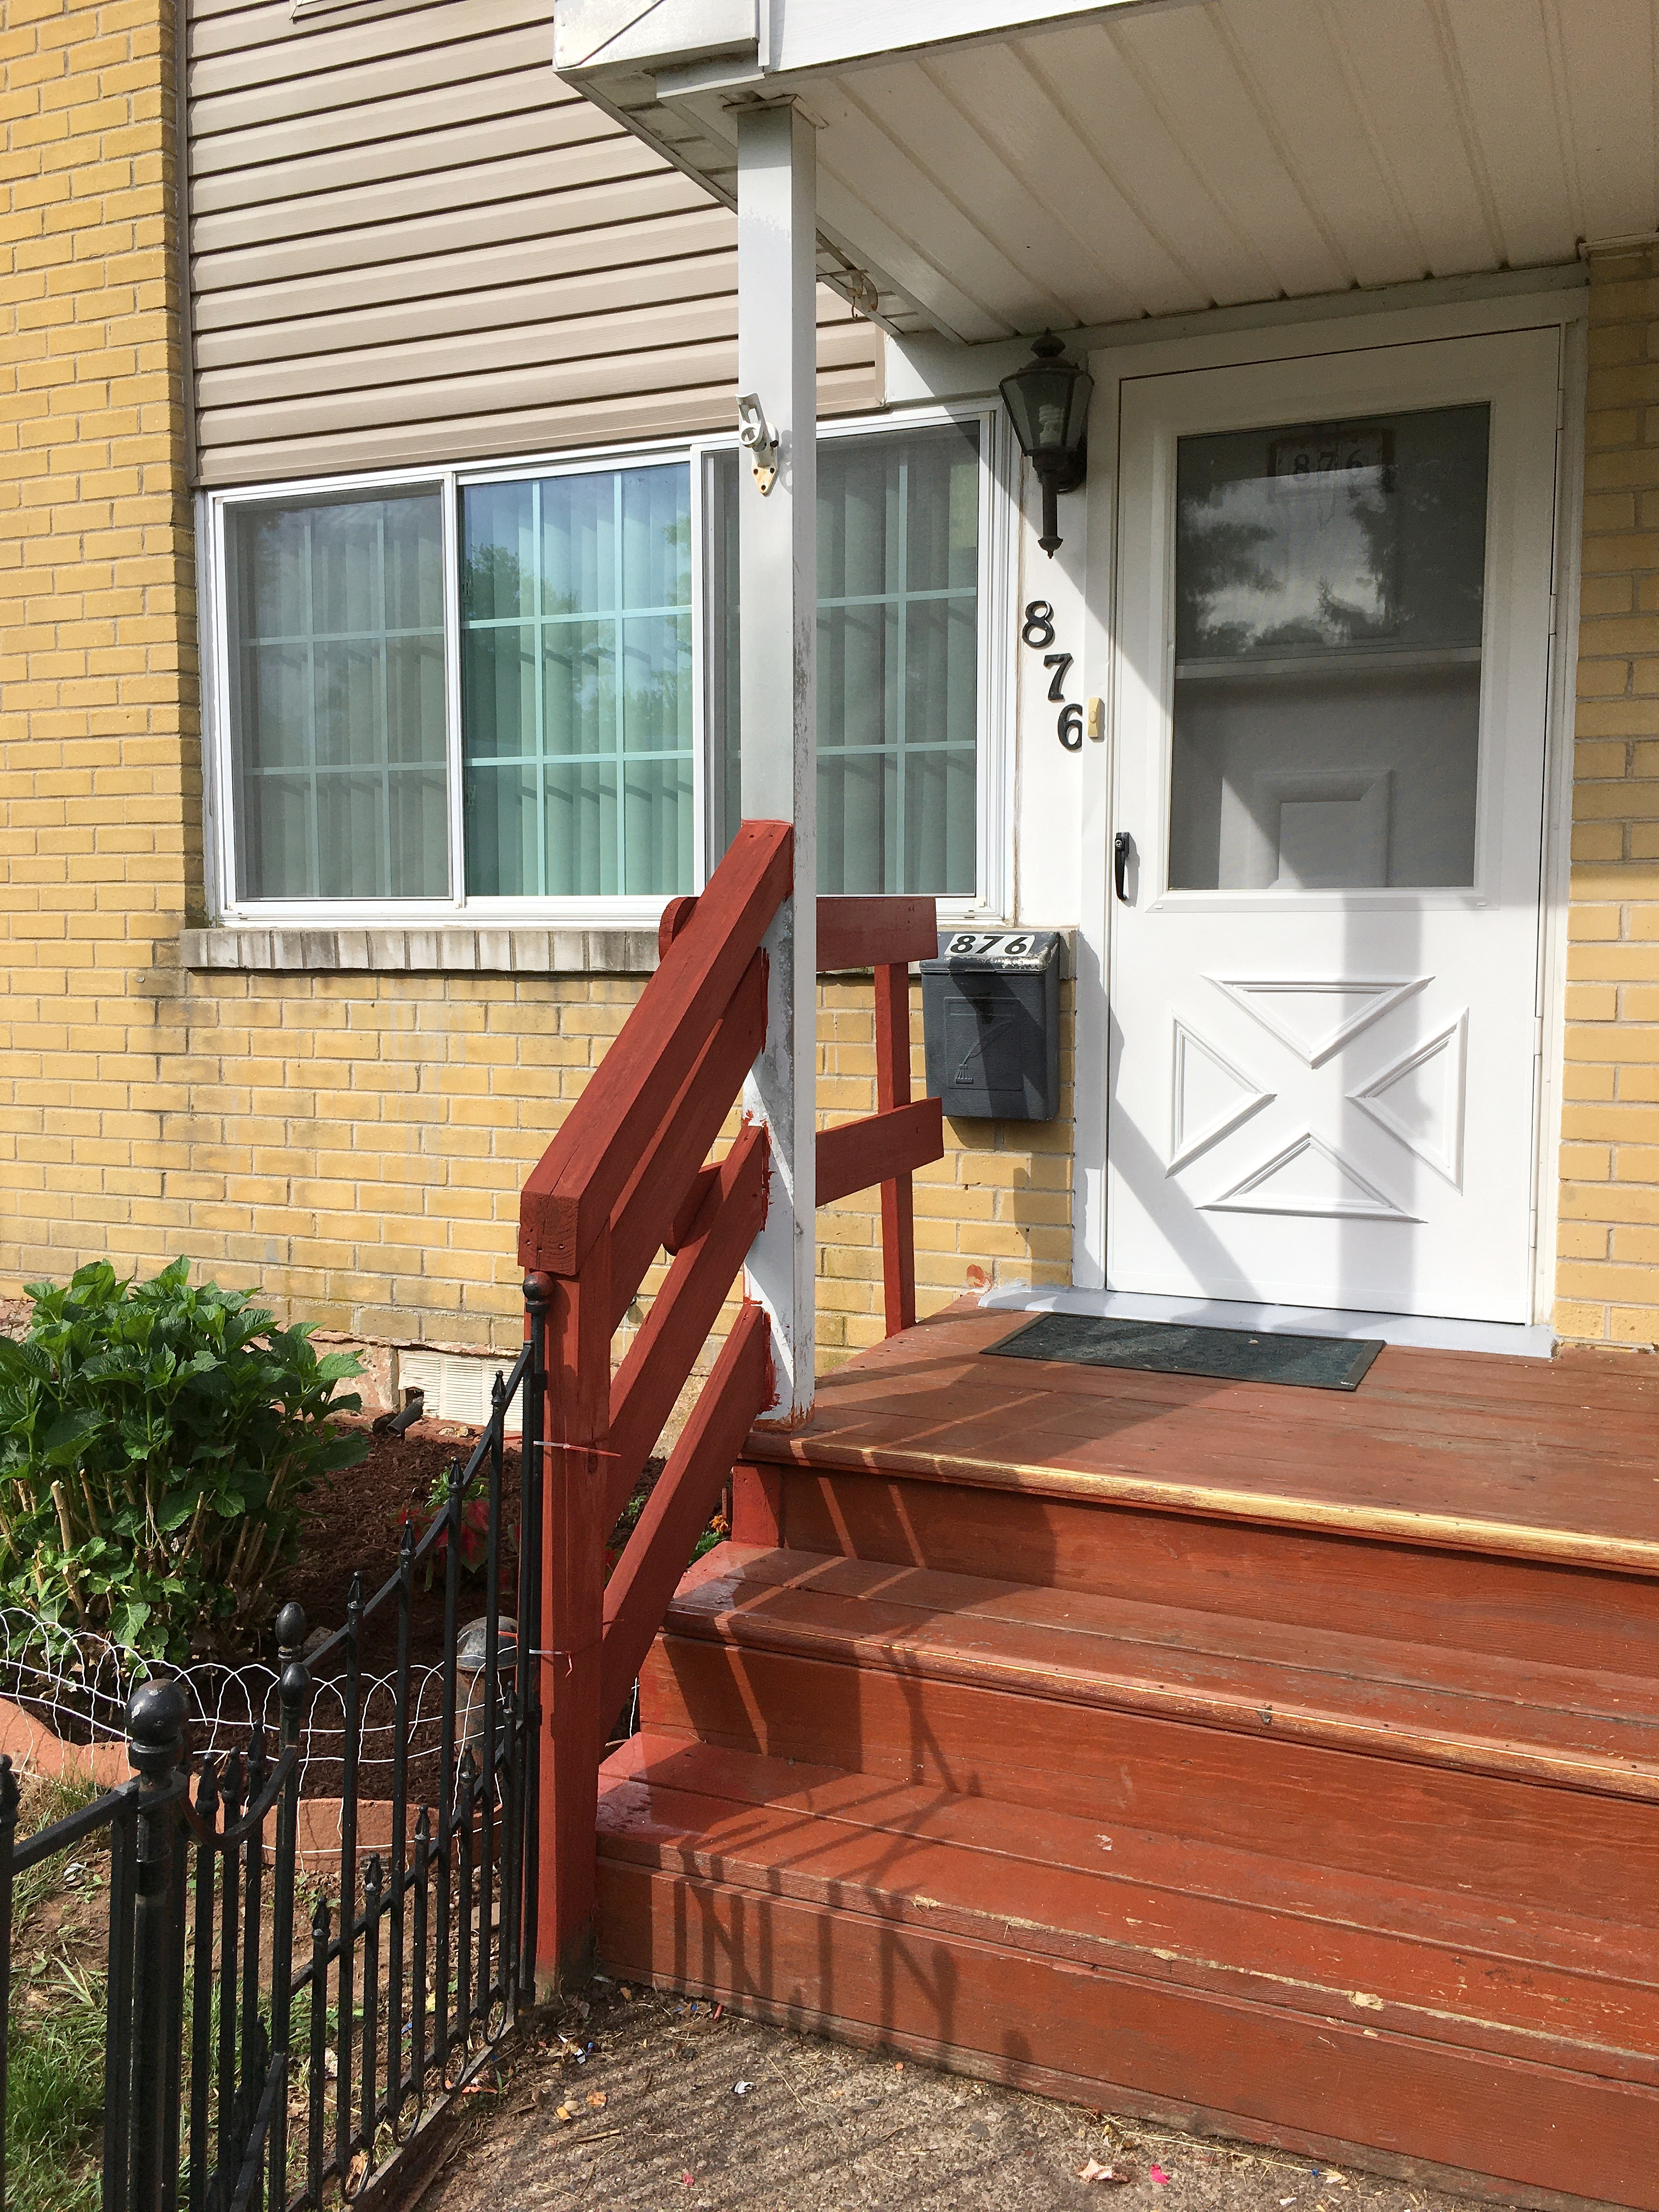 3 Bedrooms / 2 Bathrooms - Est. $1,348.00 / Month* for rent in Lansdale, PA